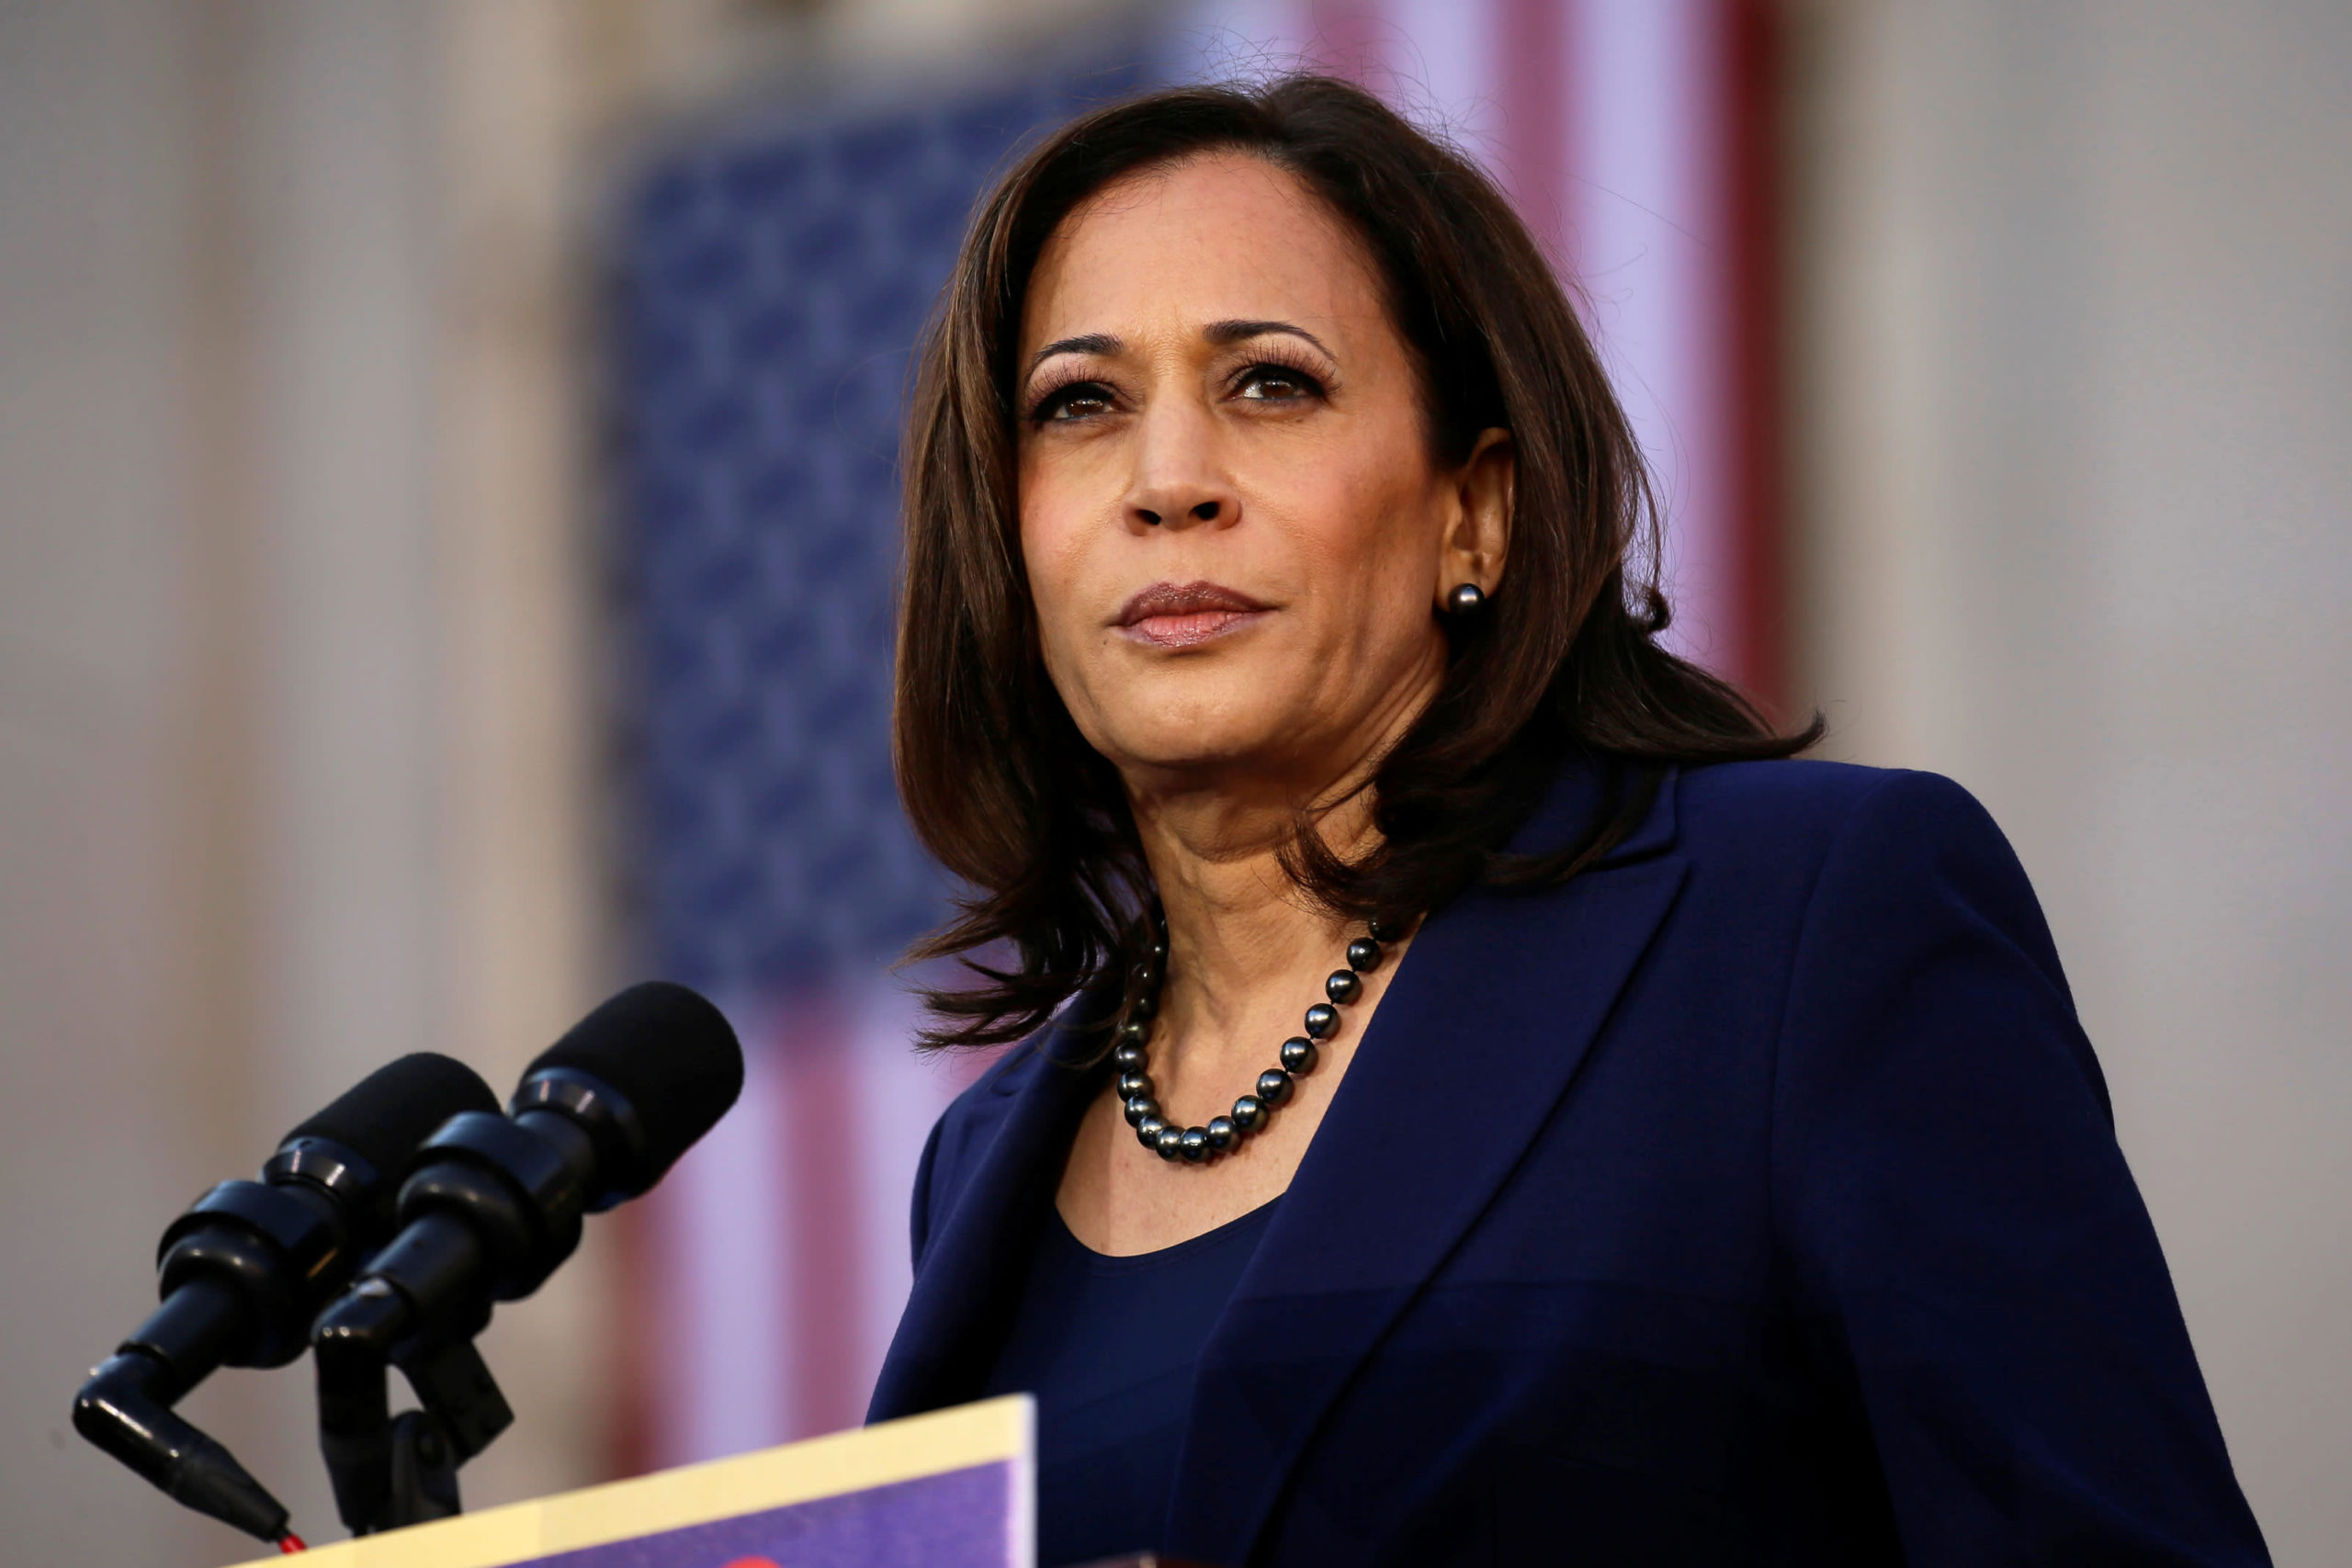 Kamala Harris has student debt forgiveness plan, but it's complicated